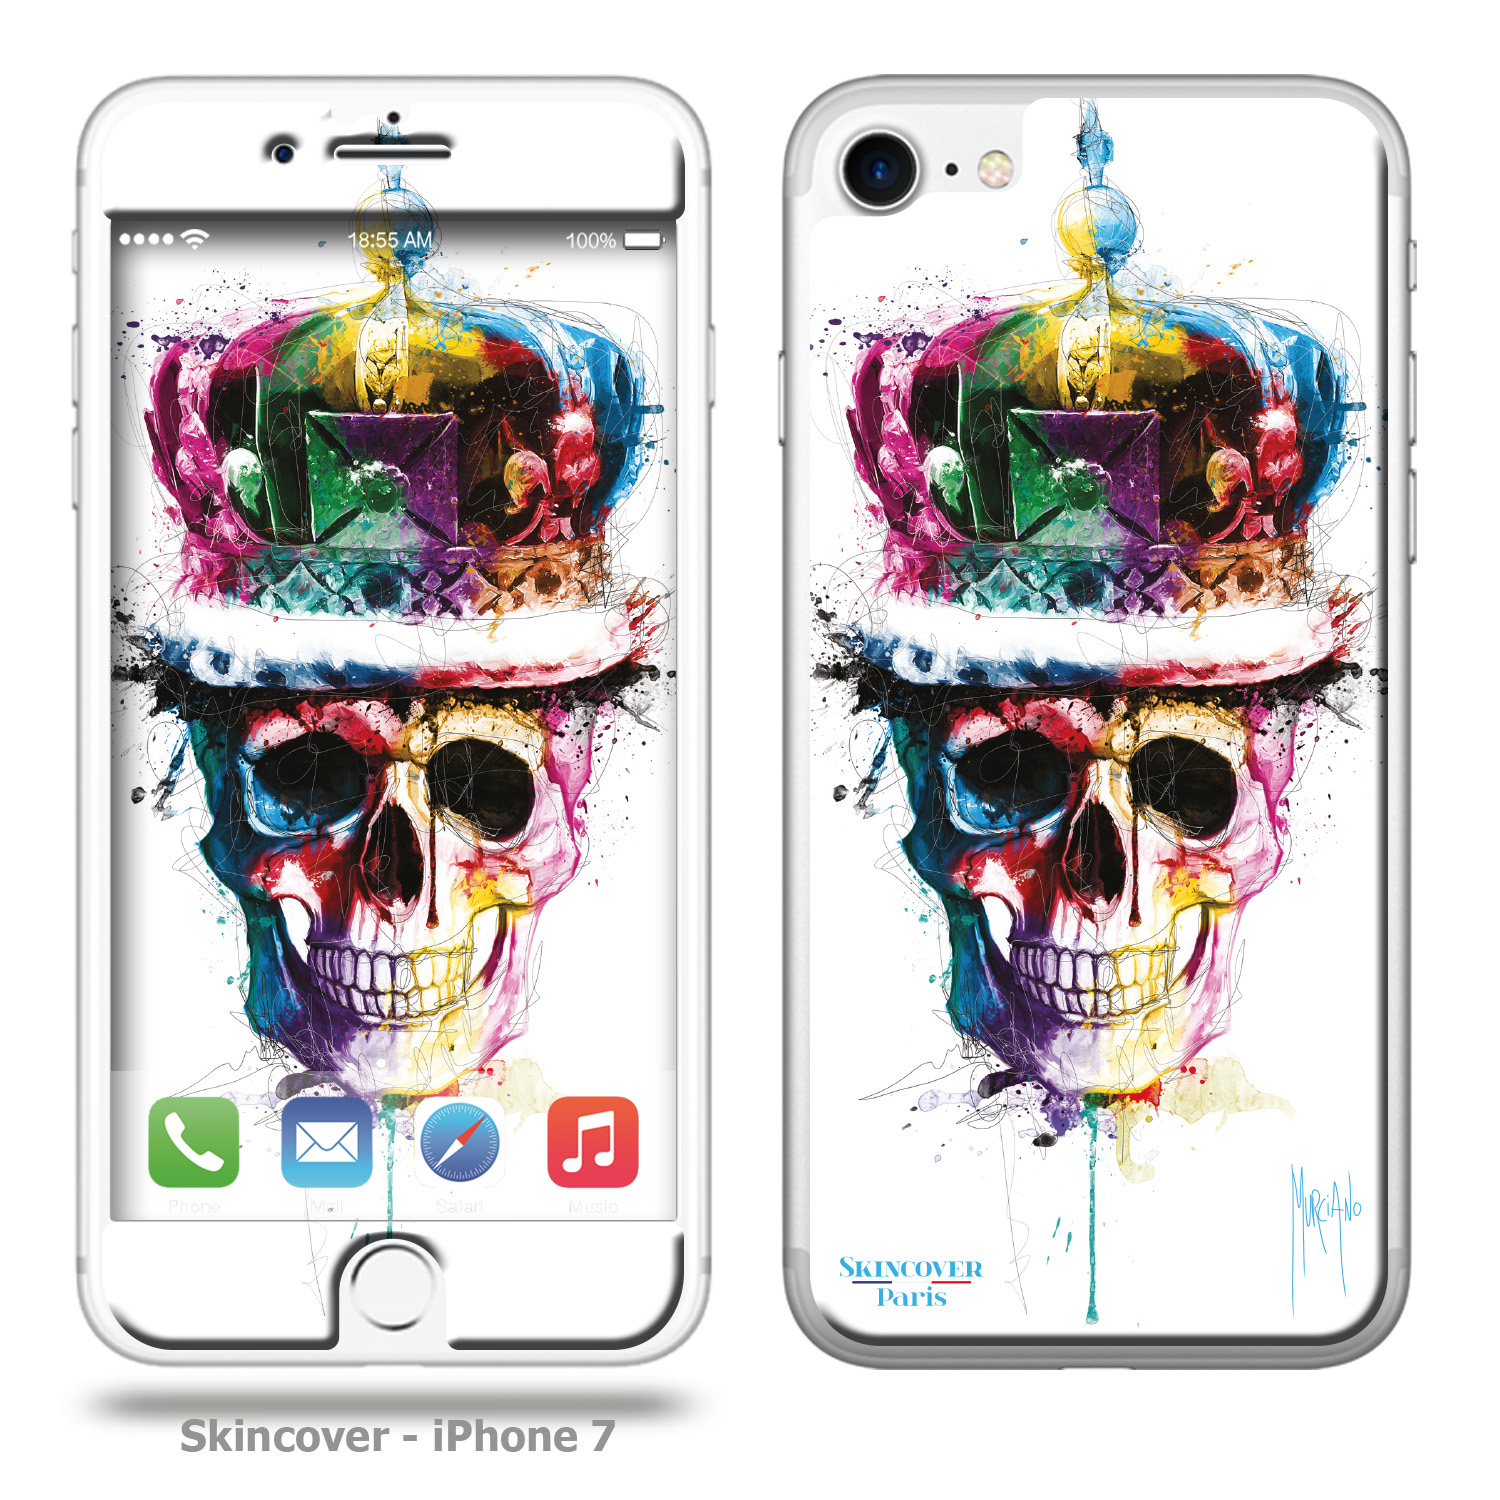 Skincover God save the queen Iphone 7 Murciano